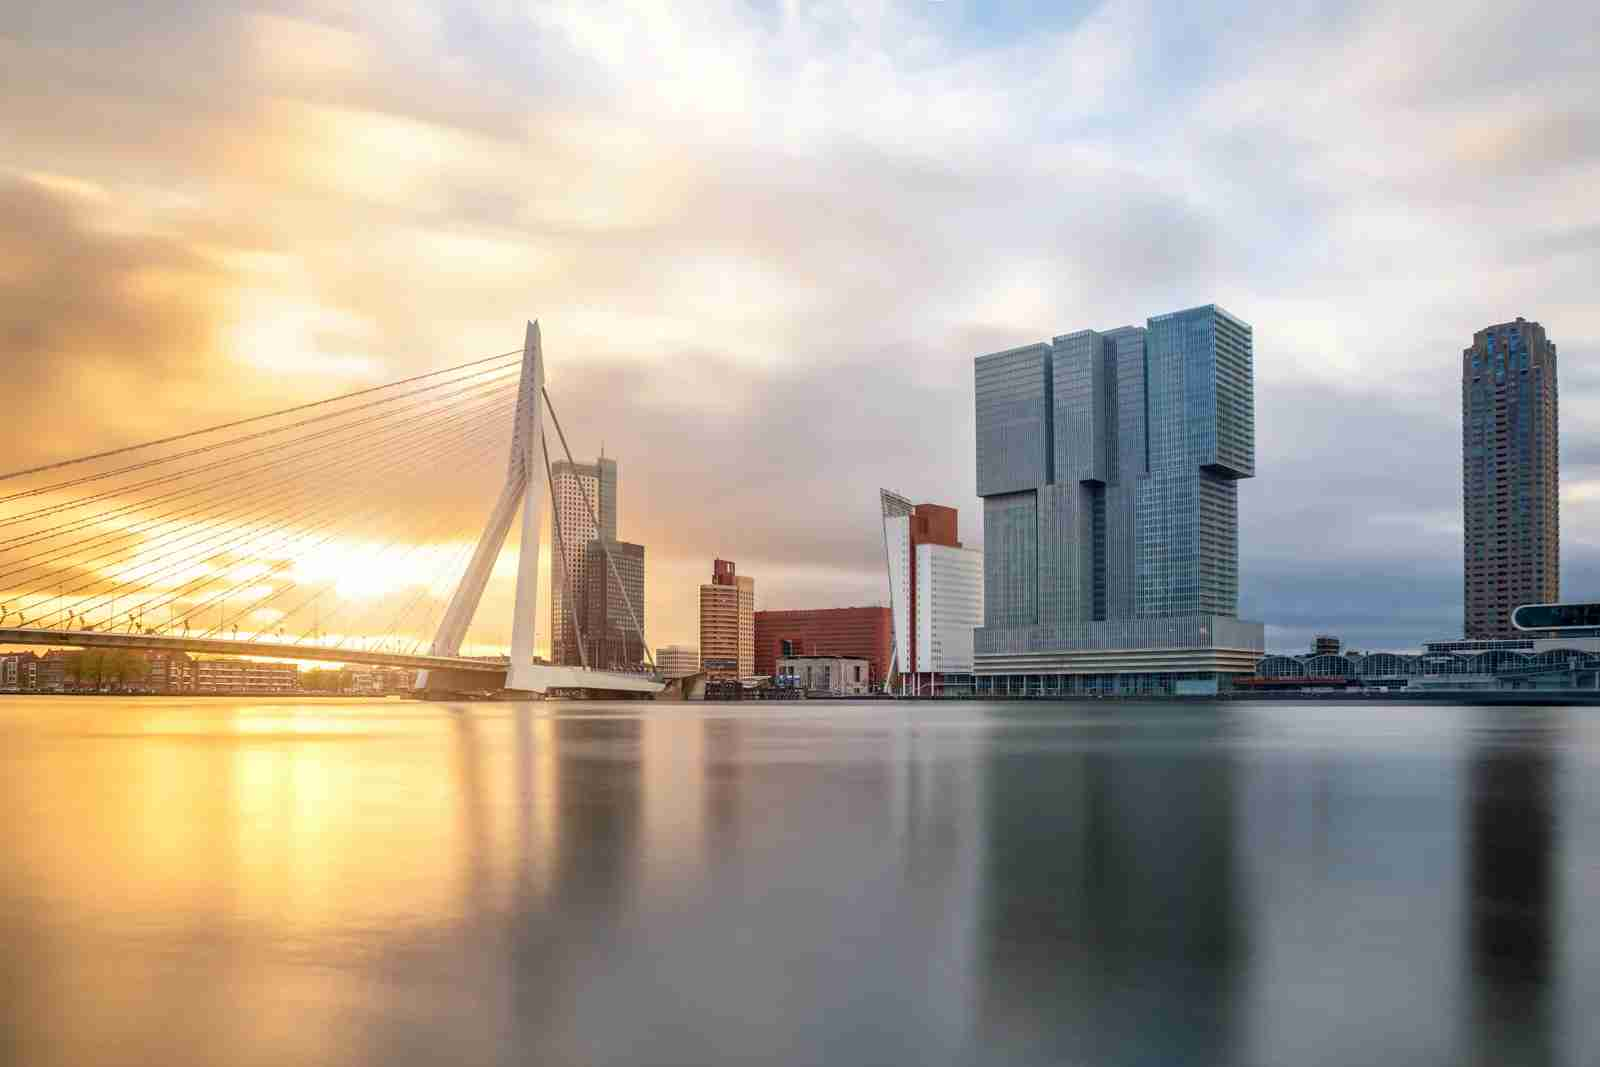 The Rotterdam Skyline. (Photo by Prasit Rodphan/Getty Images)